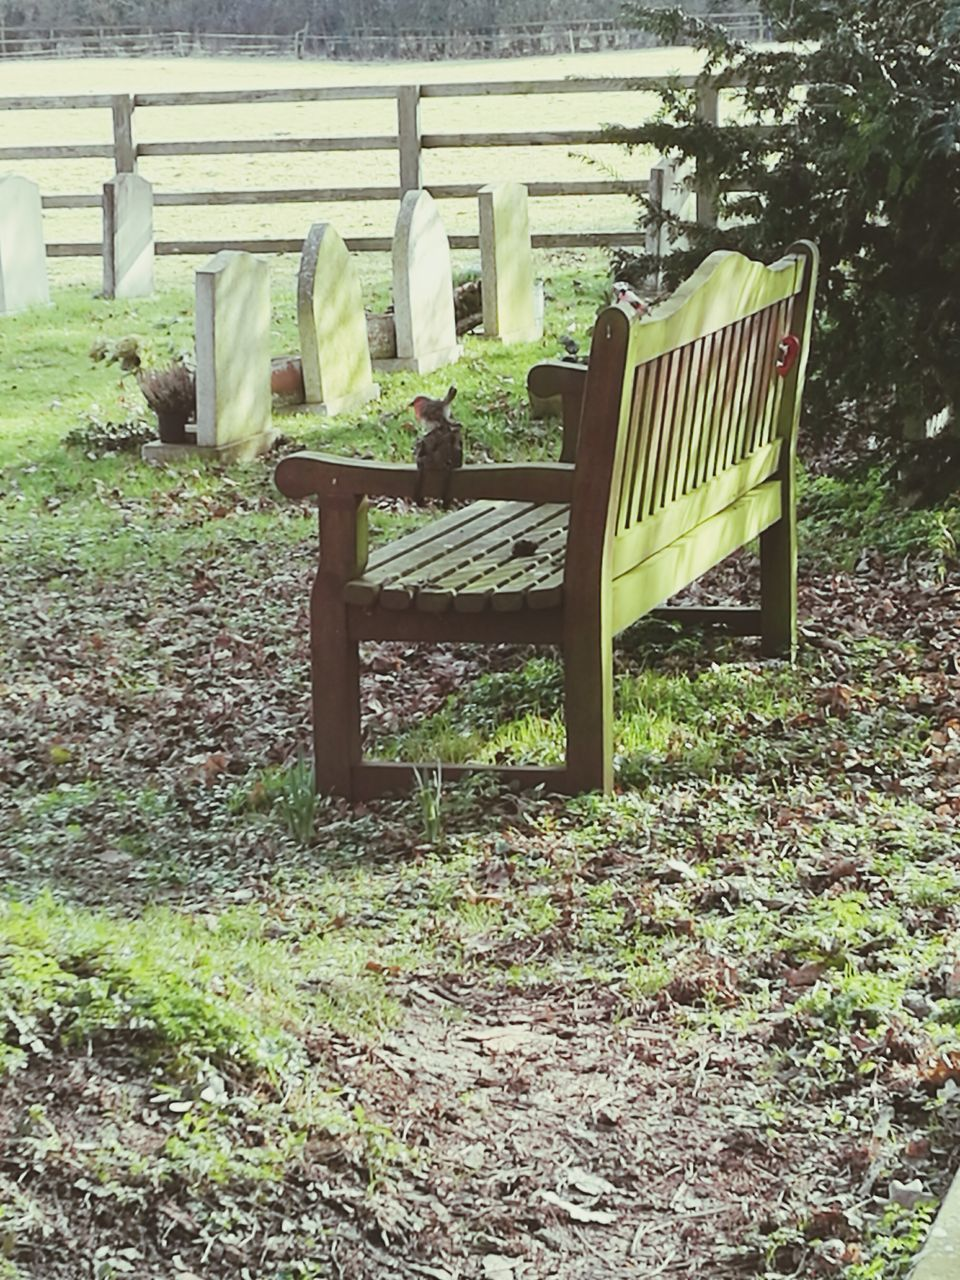 chair, day, outdoors, grass, no people, relaxation, seat, nature, tree, mammal